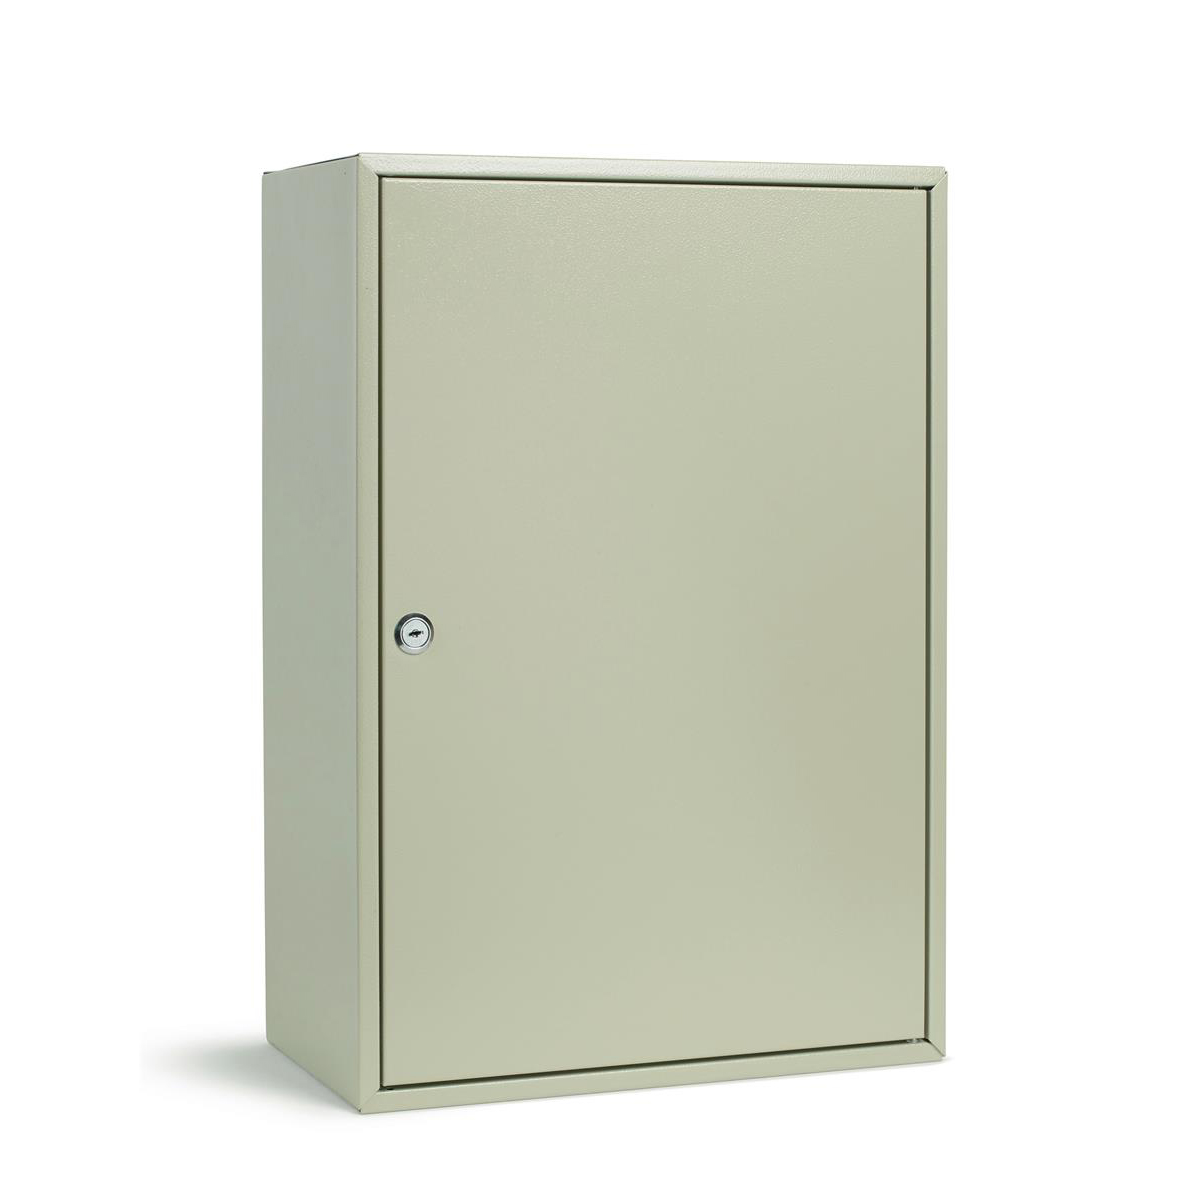 Key cabinets or organizers Key Cabinet Steel Lockable With Wall Fixings Holds 300 Keys Grey